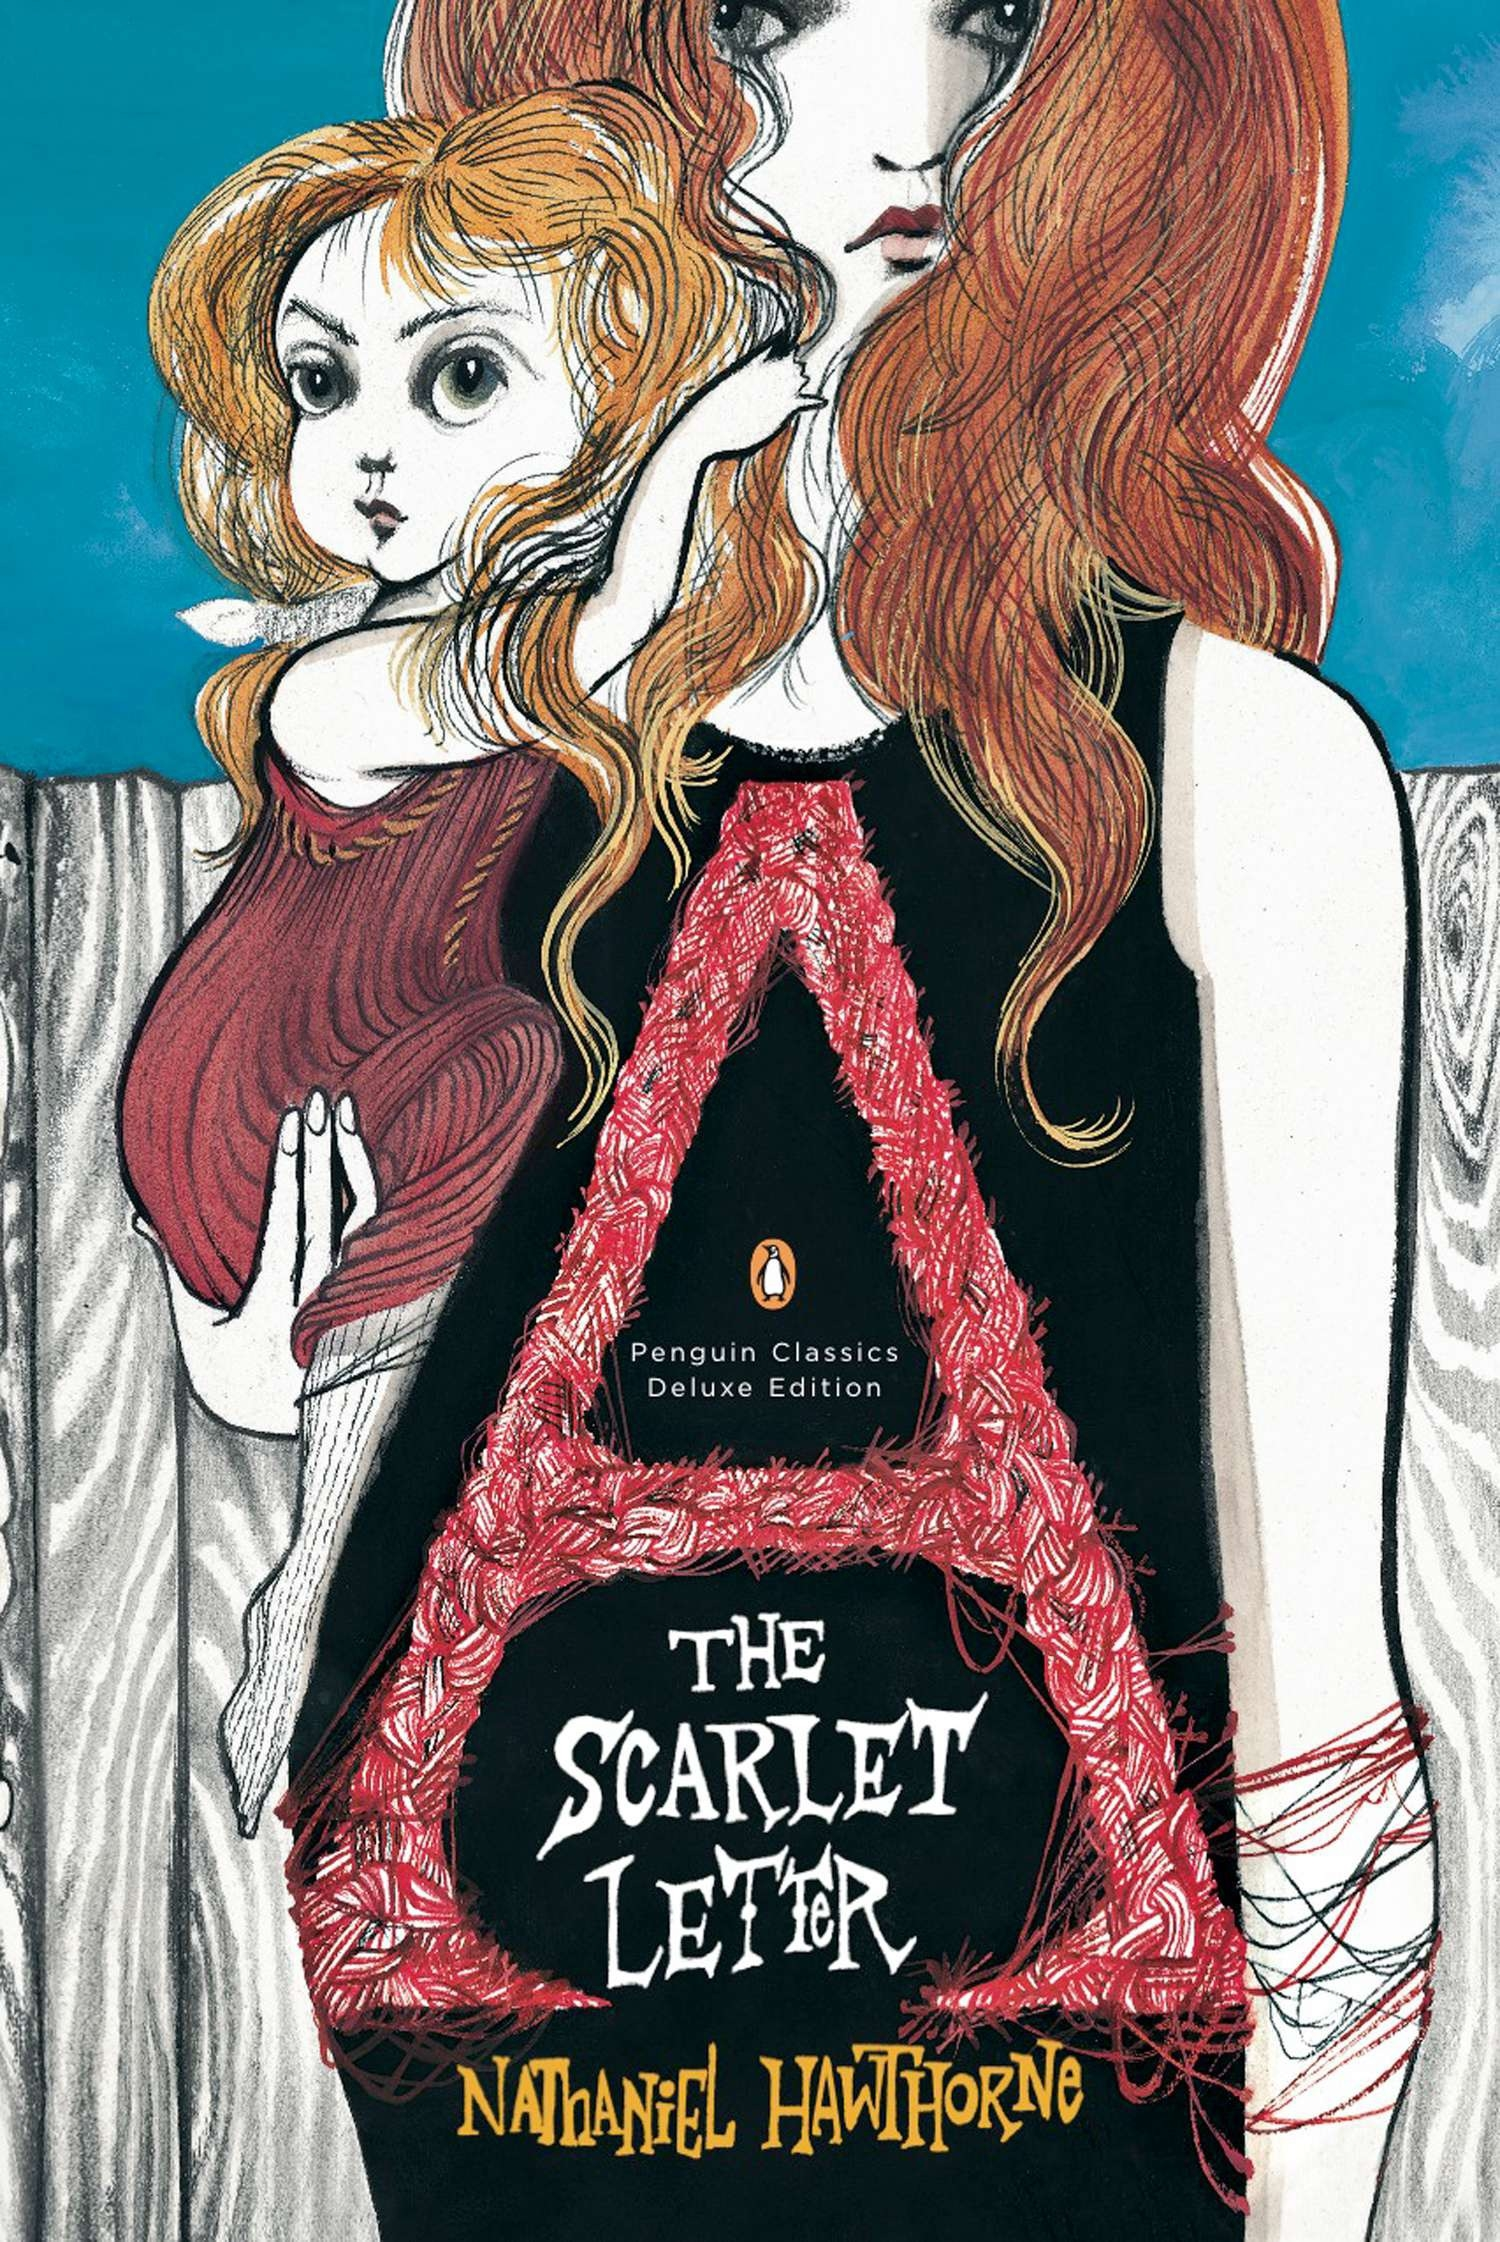 the role of pearl in the novel the scarlet letter by nathaniel hawthorne The scarlet letter: a romance, an 1850 novel, is a work of historical fiction written by american author nathaniel hawthorne it is considered his masterwork set in 17th-century puritan.